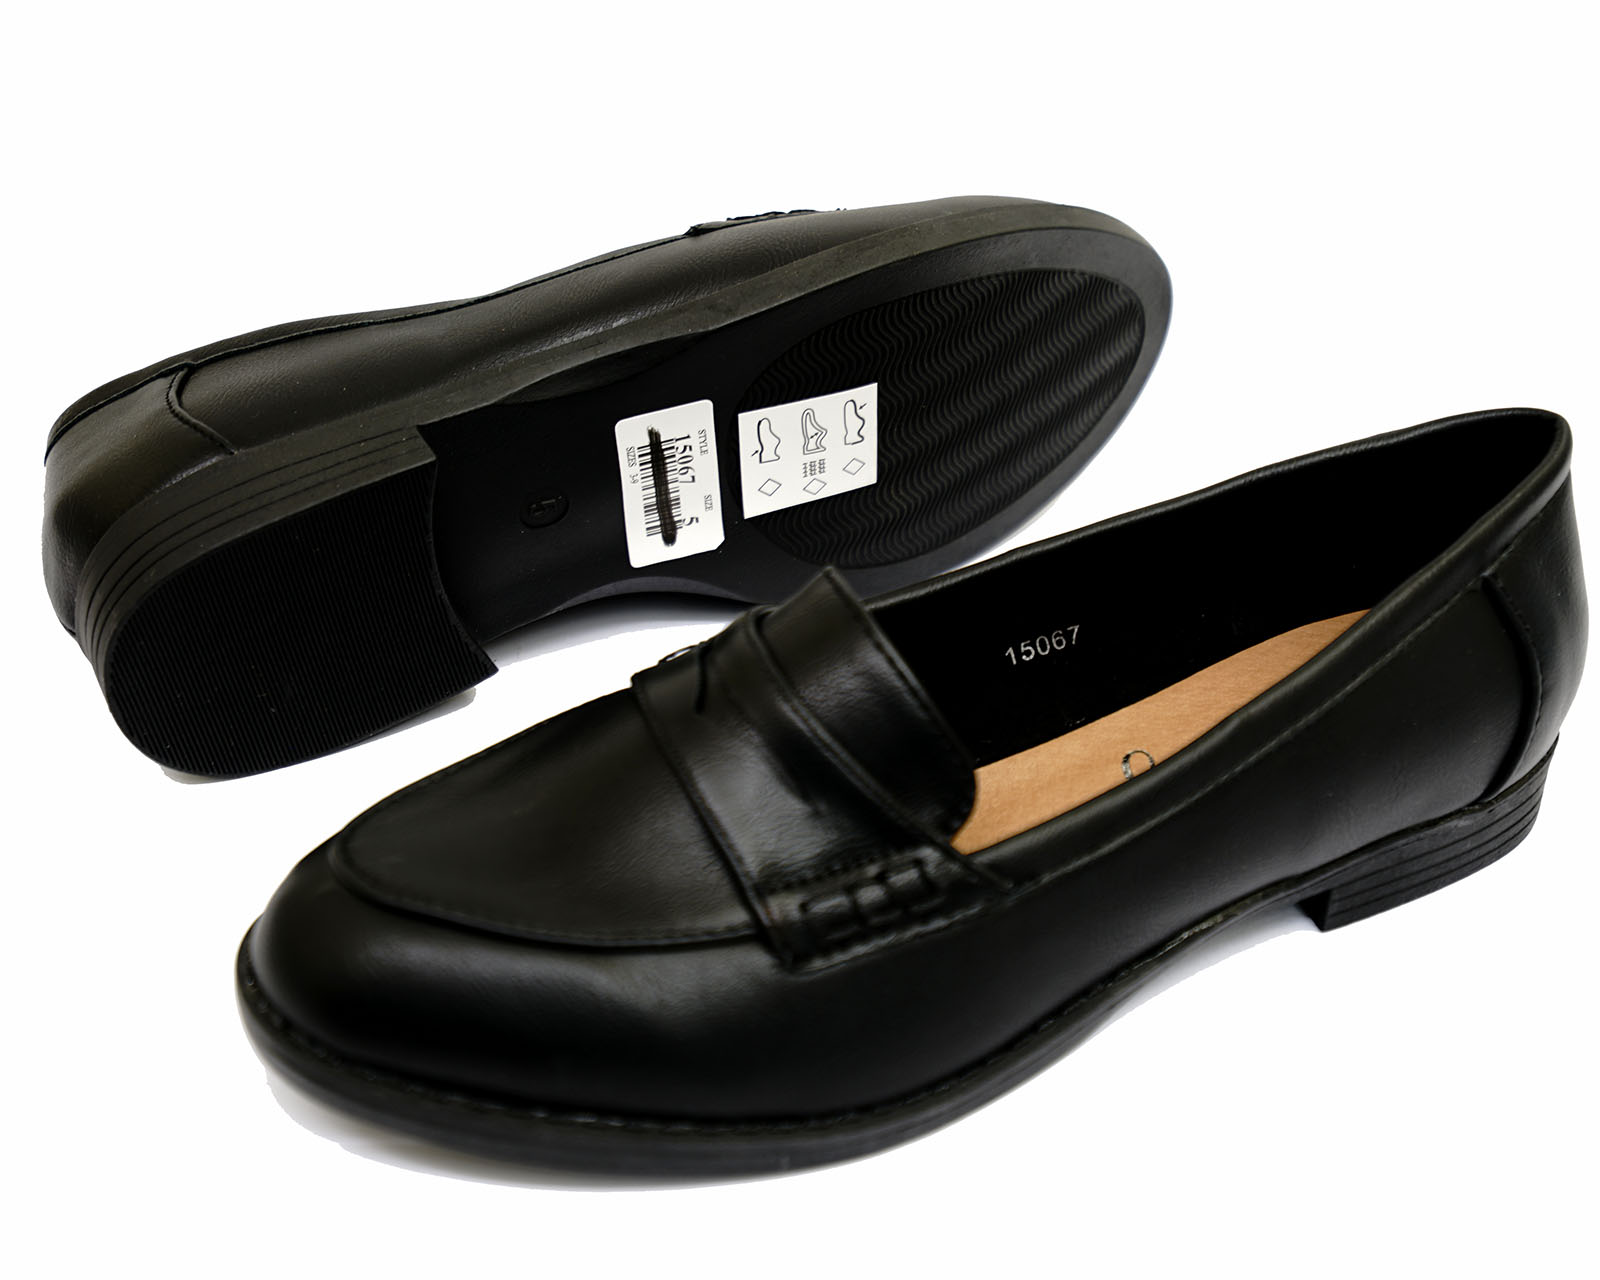 LADIES-BLACK-SLIP-ON-LOAFERS-MOCCASIN-CASUAL-SMART-WORK-COMFY-SCHOOL-SHOES-3-9 thumbnail 8